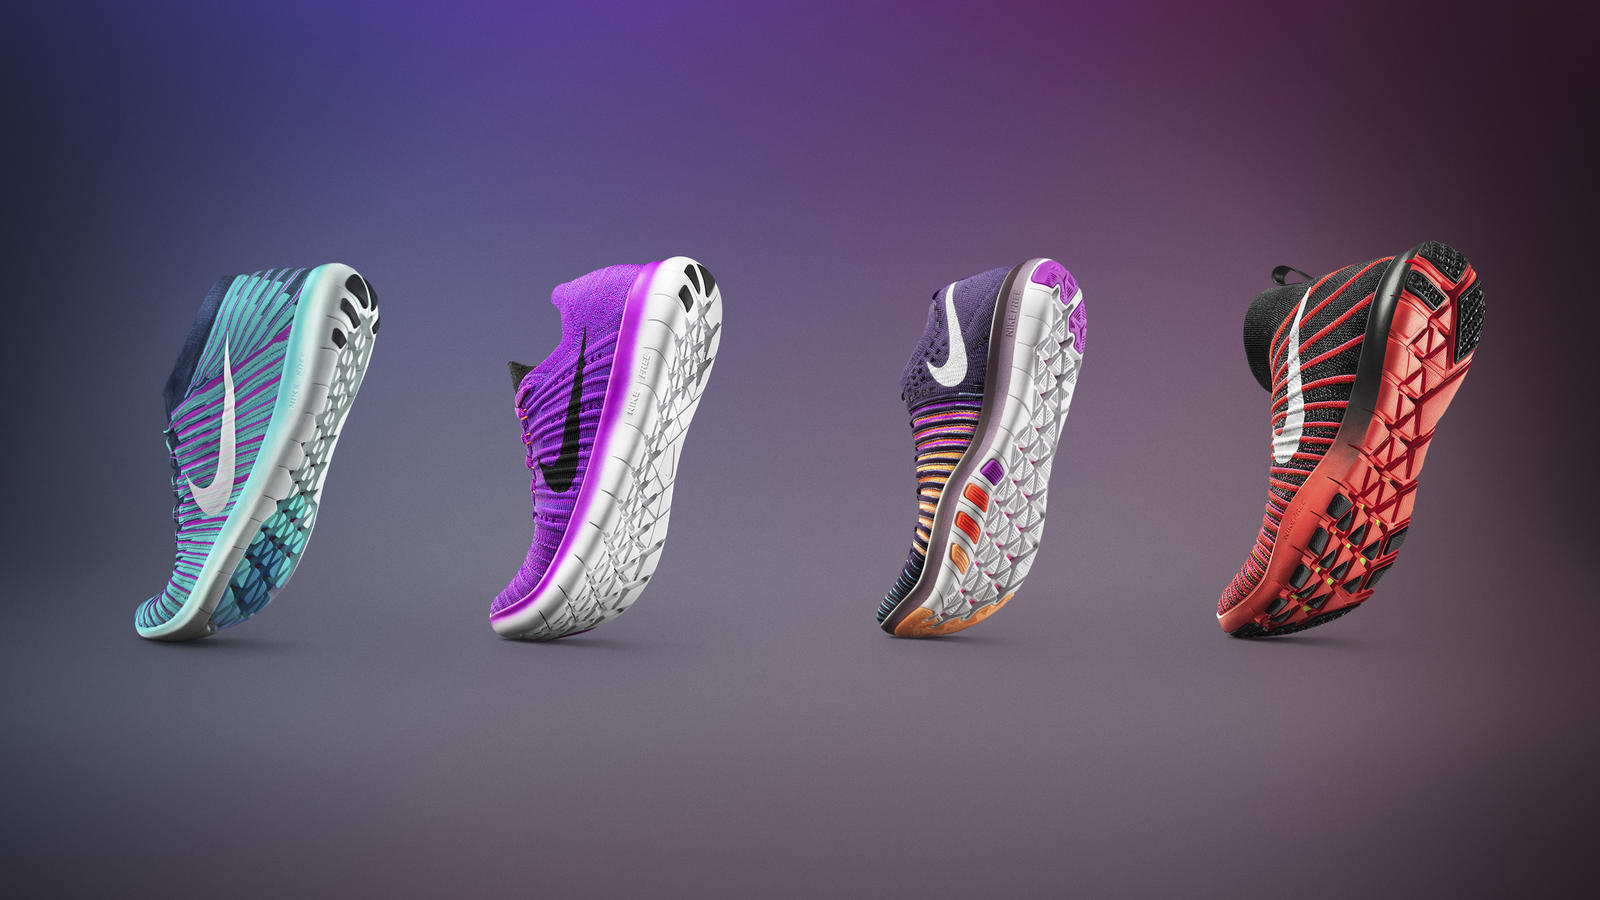 The New Dimensions of Nike Free Nike News